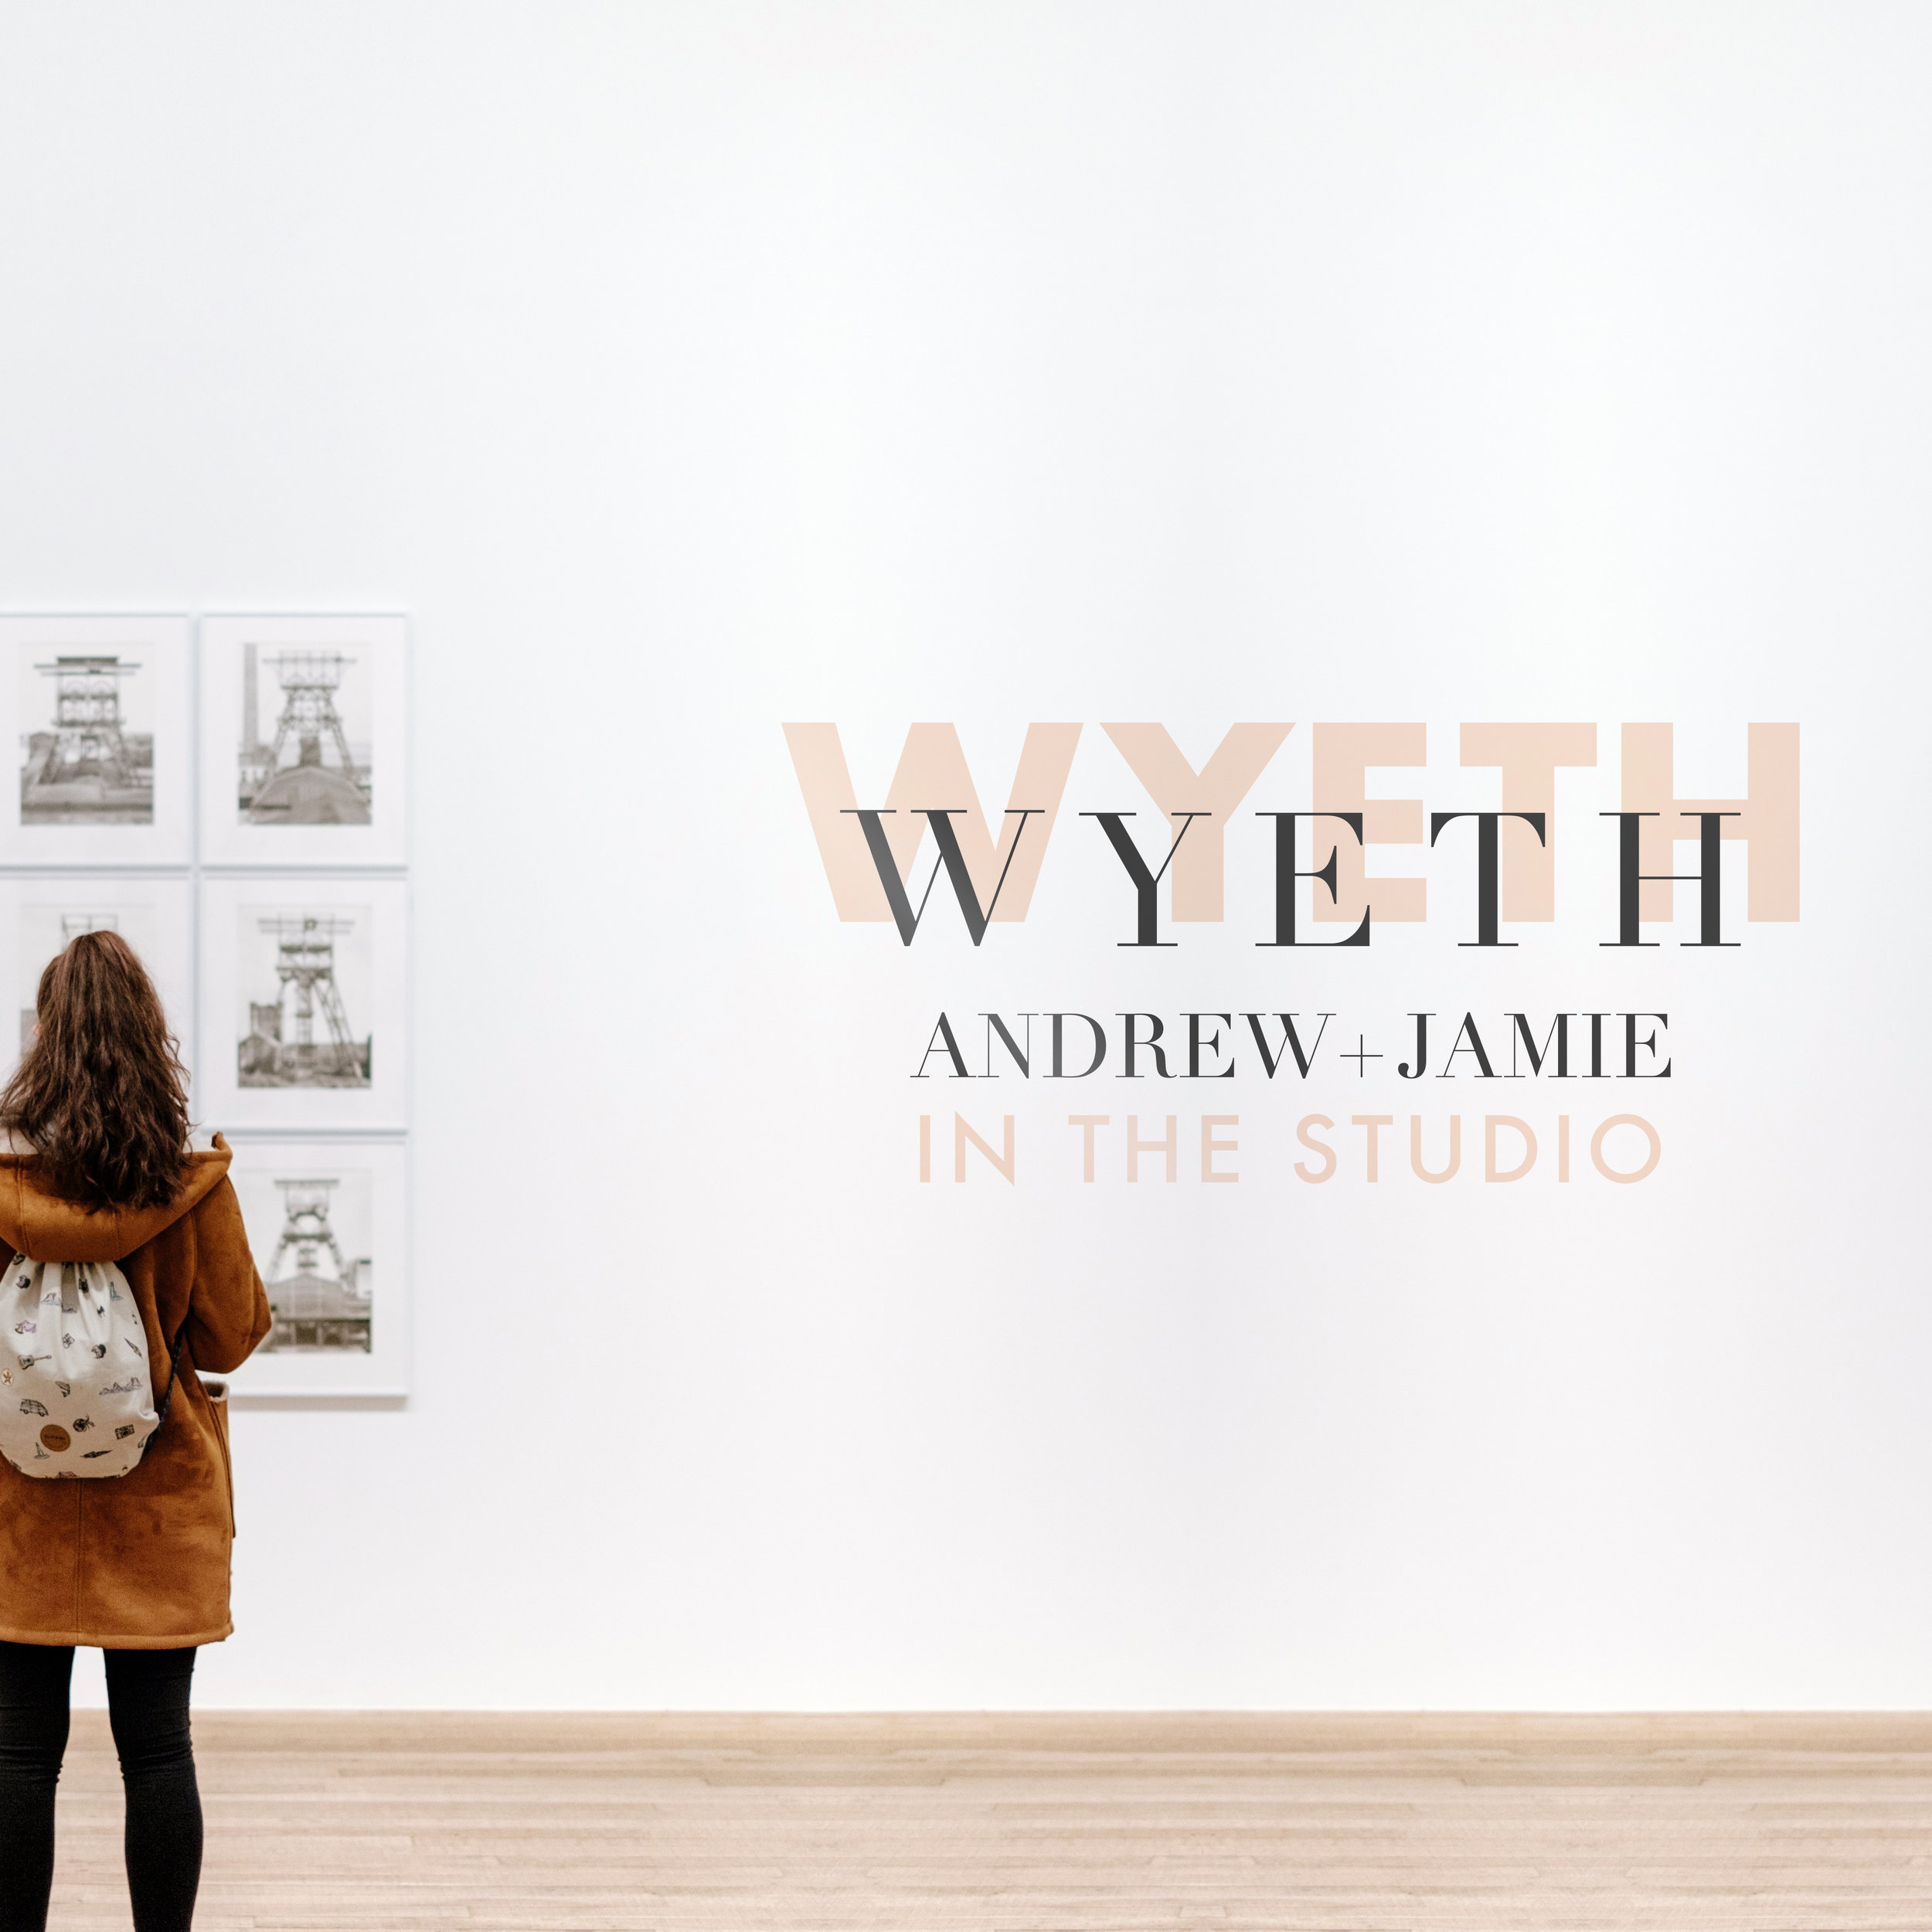 Exhibition-Logo_Wall-Title_03.jpg